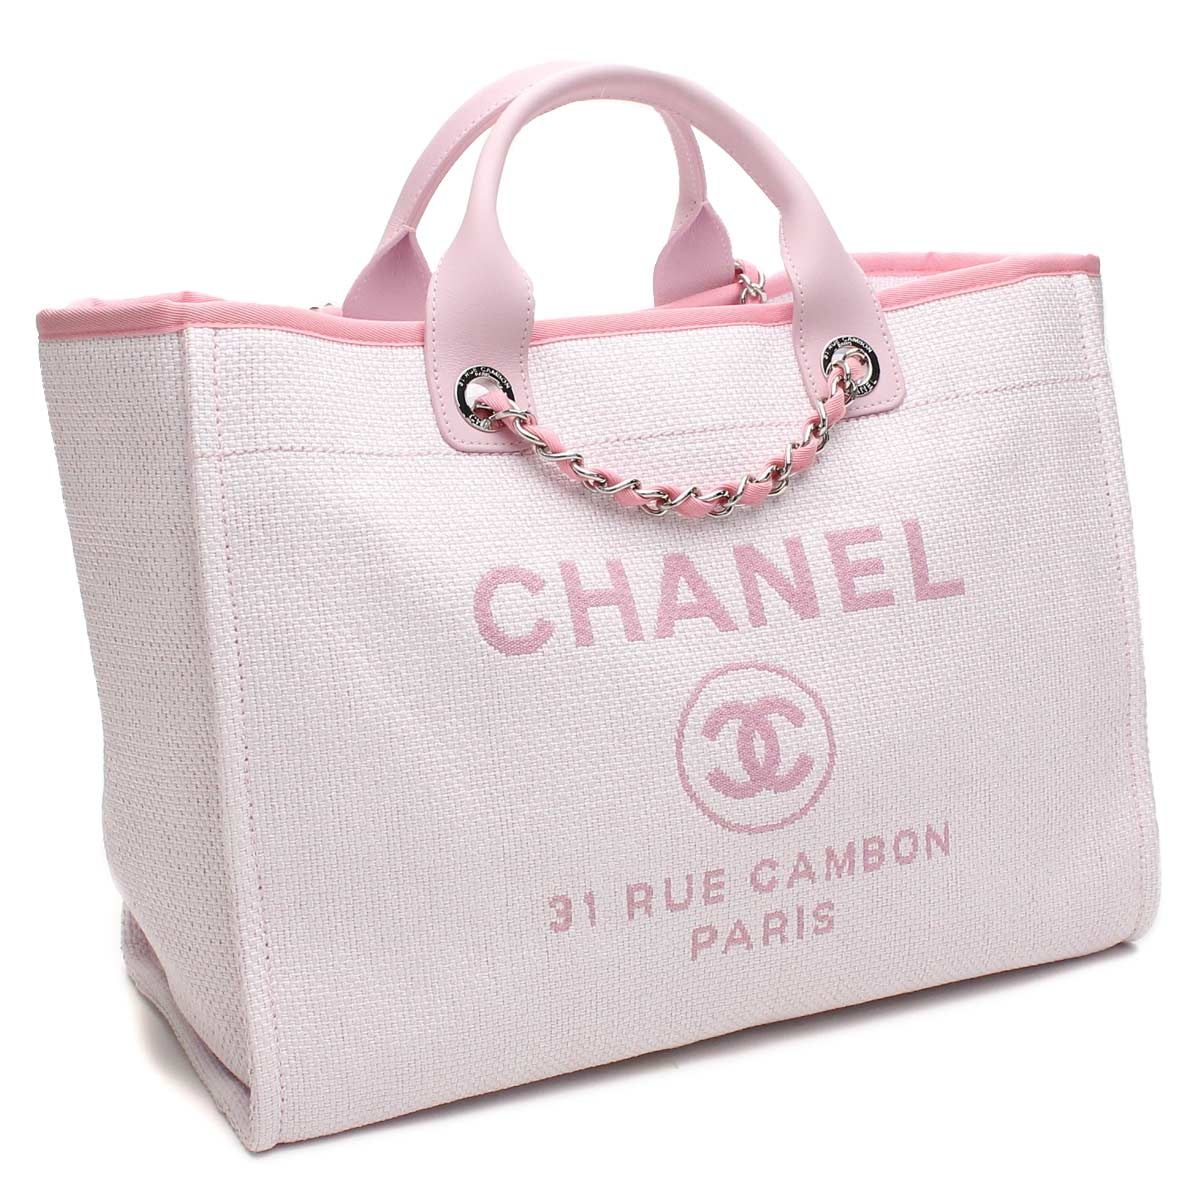 05ce69bf23d1 Bighit The total brand wholesale  ( tax free ! )Light pink Chanel tote bag  A66941( taxfree send by EMS authentic A brand new item )